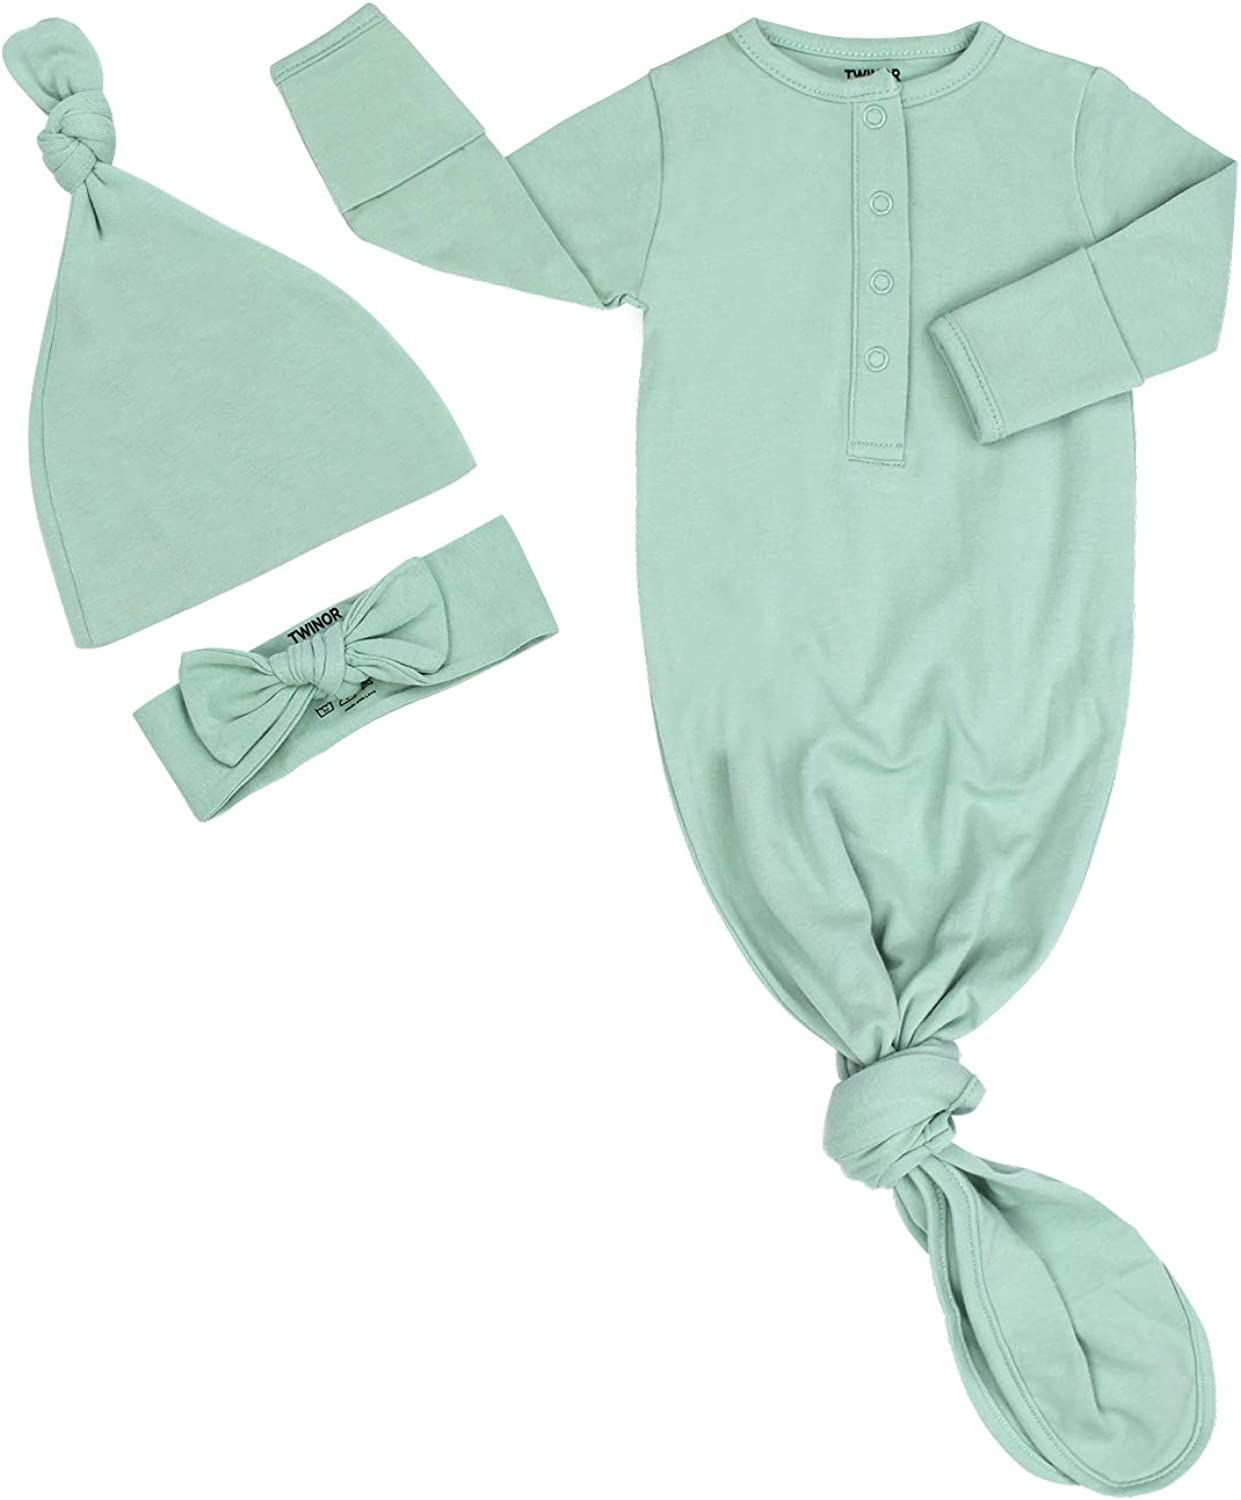 TWINOR Plain Knotted Baby Gown with Headband Hat Infant Sleeper for Baby Girl and Boy